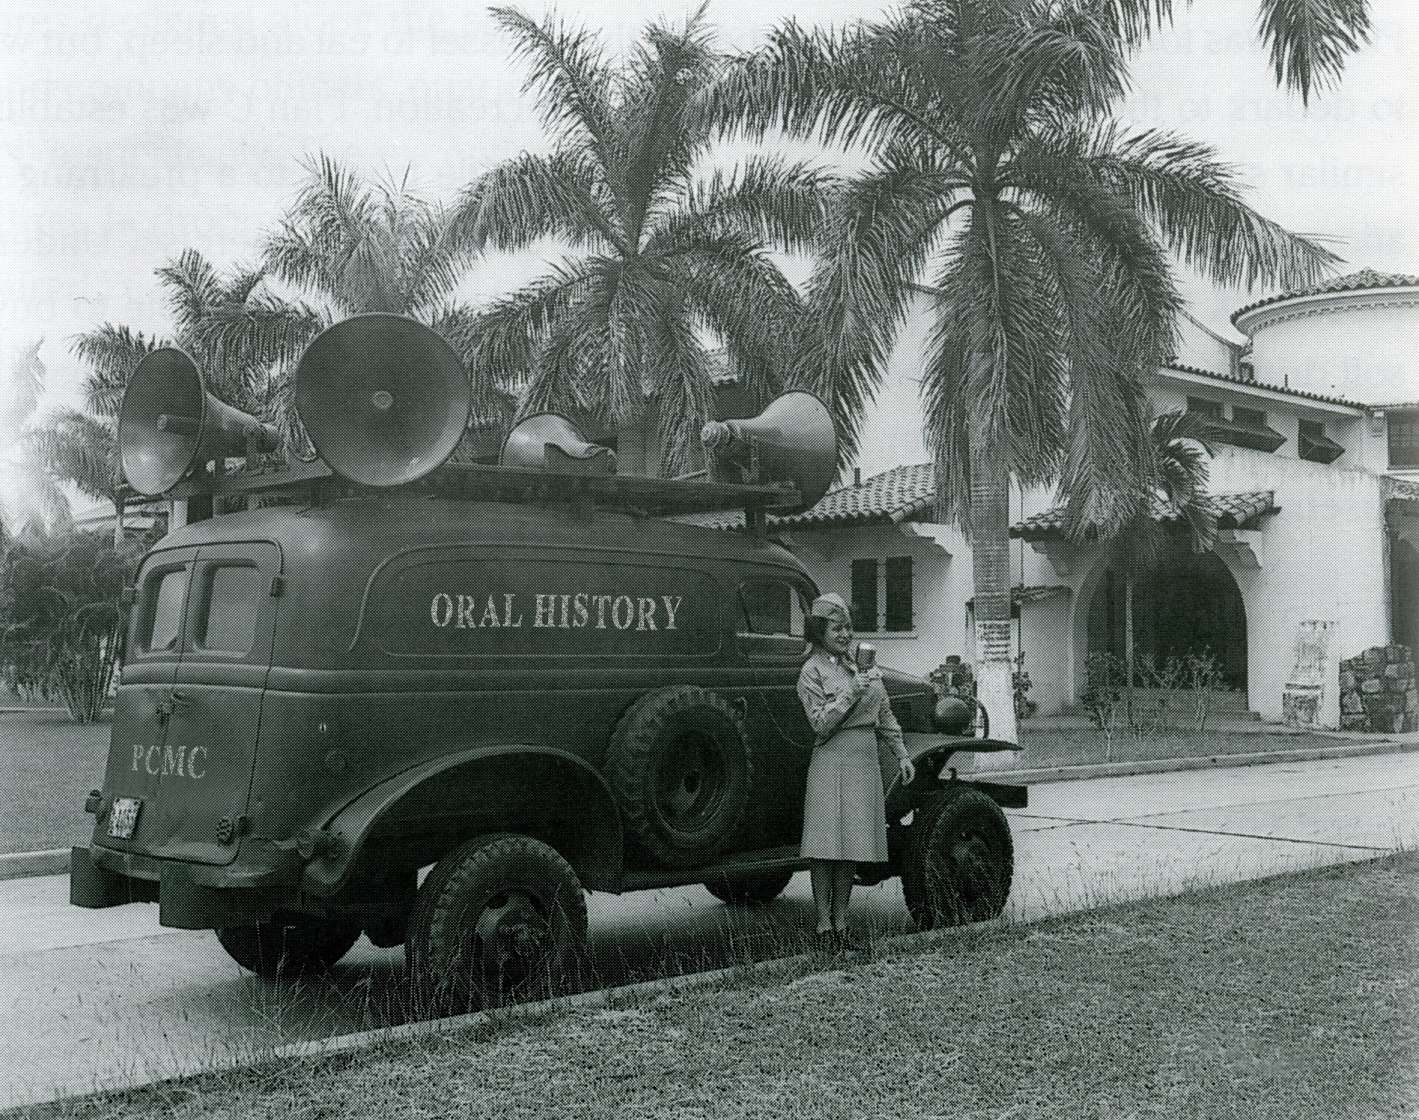 Oral History truck